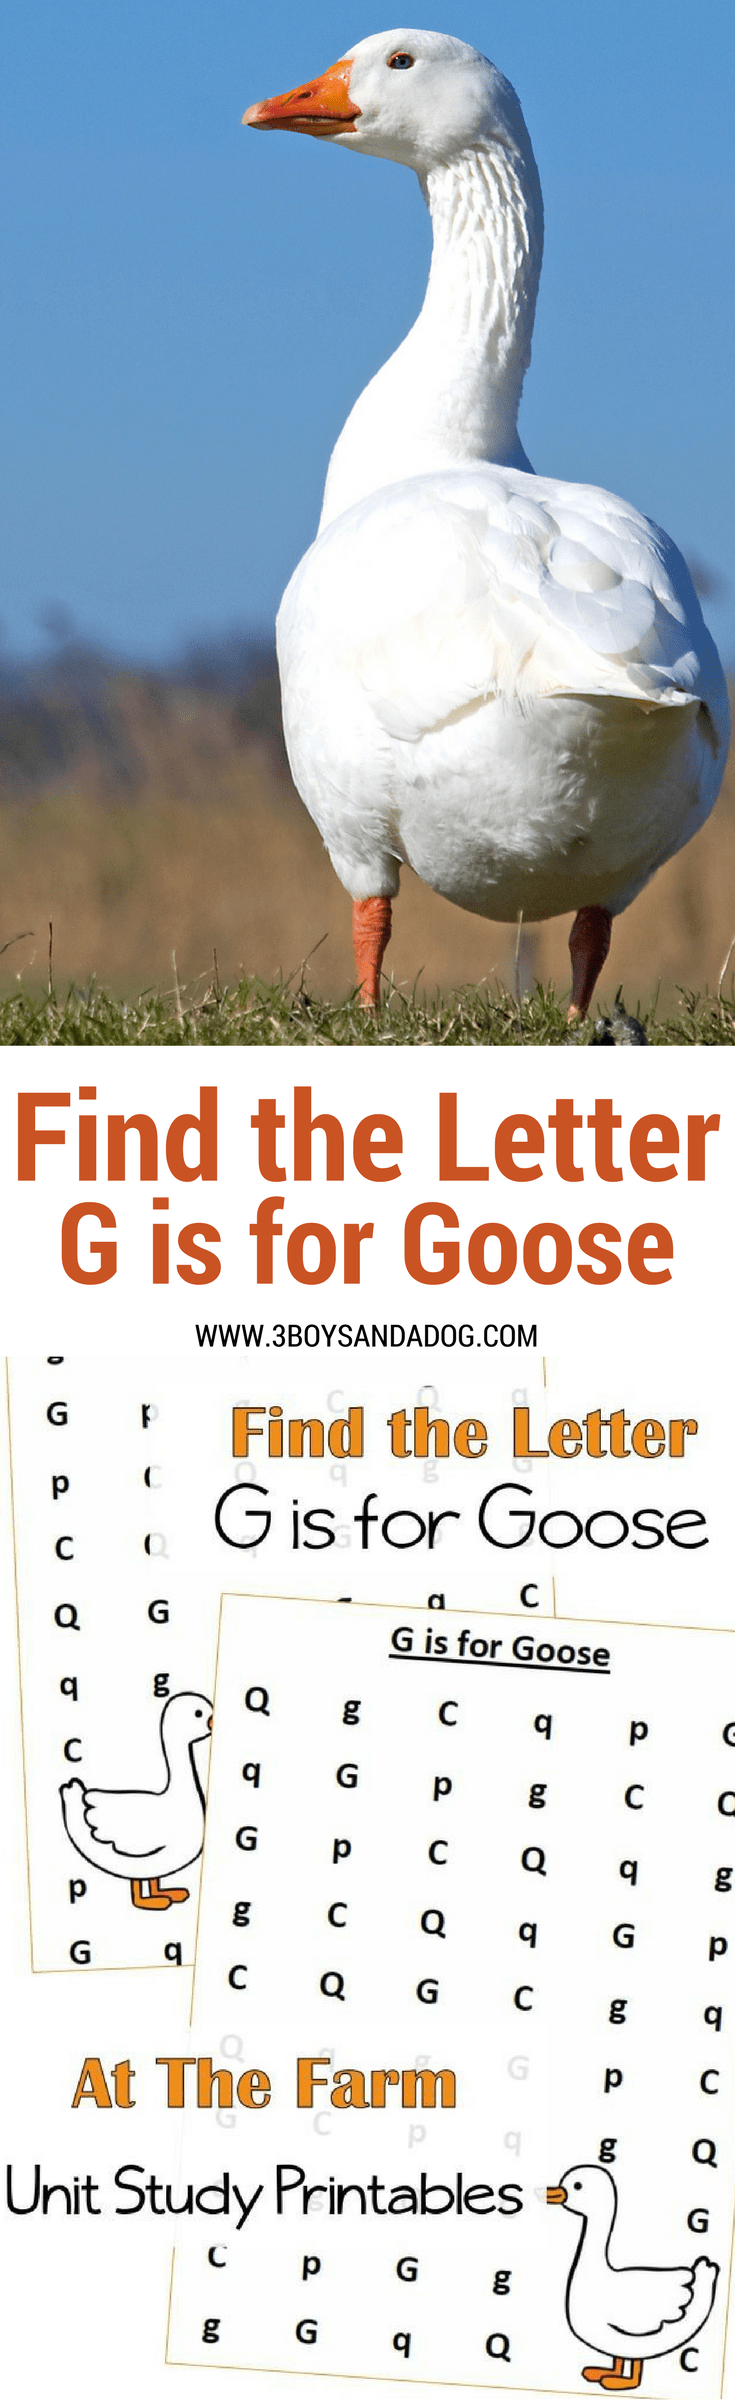 Find the letter printables g is for goose at the farm unit study these find the letter printables g is for goose will help your preschool and early altavistaventures Images